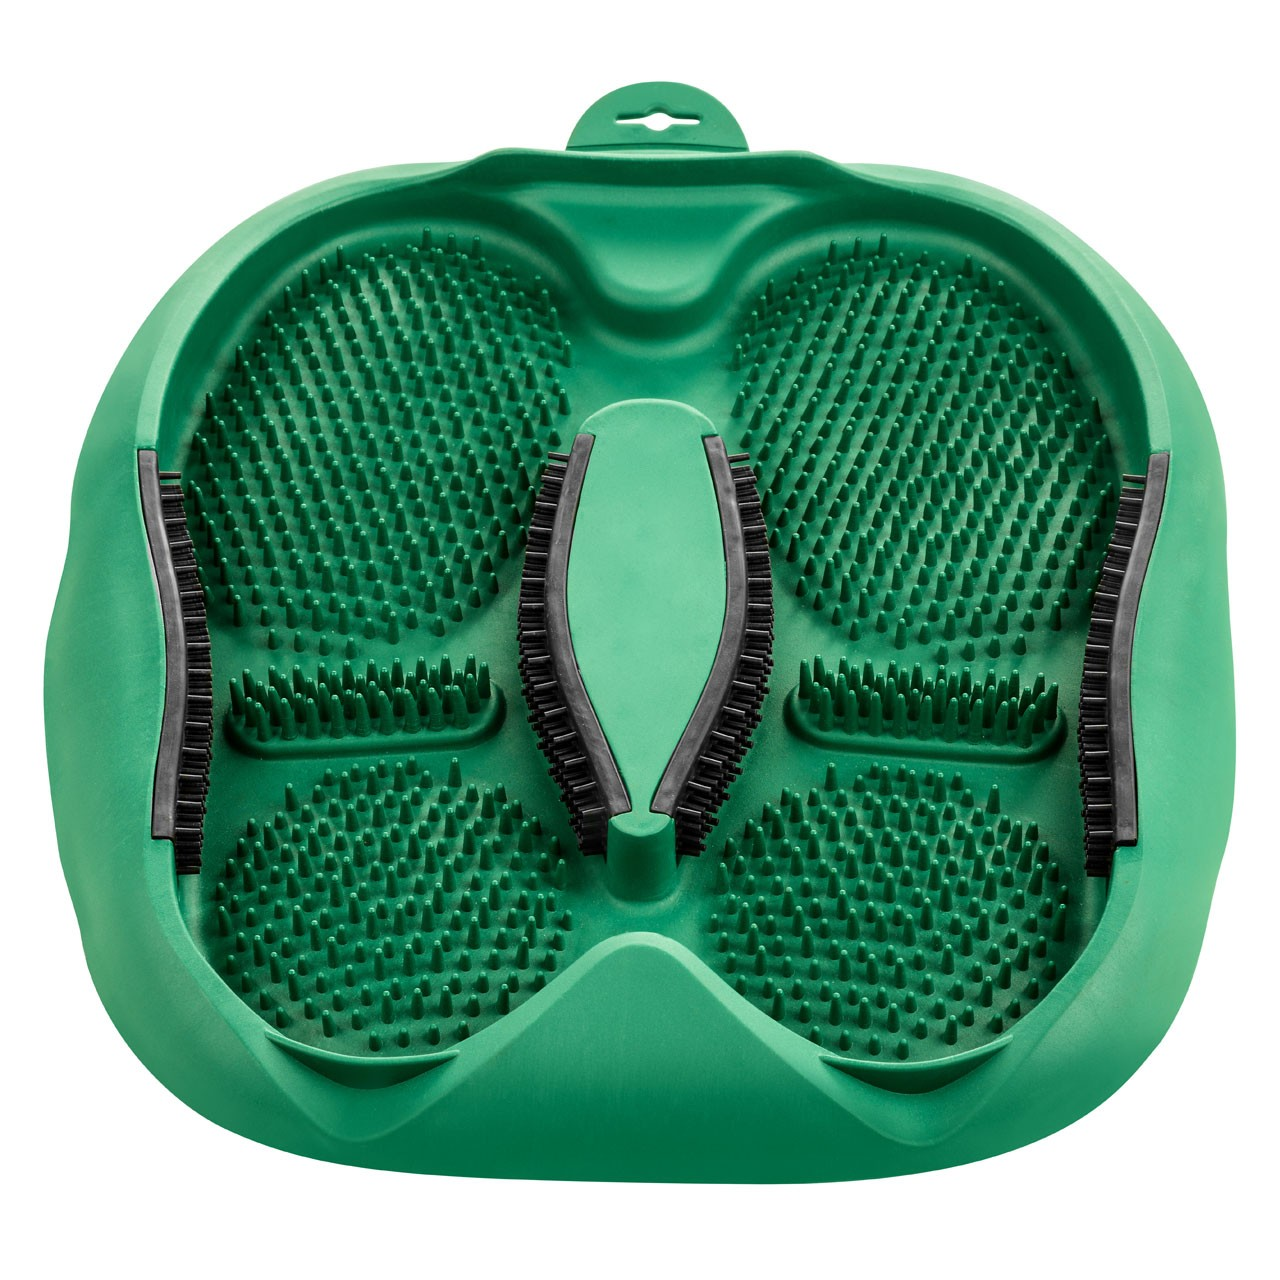 Footwear Cleaning Mat - Green